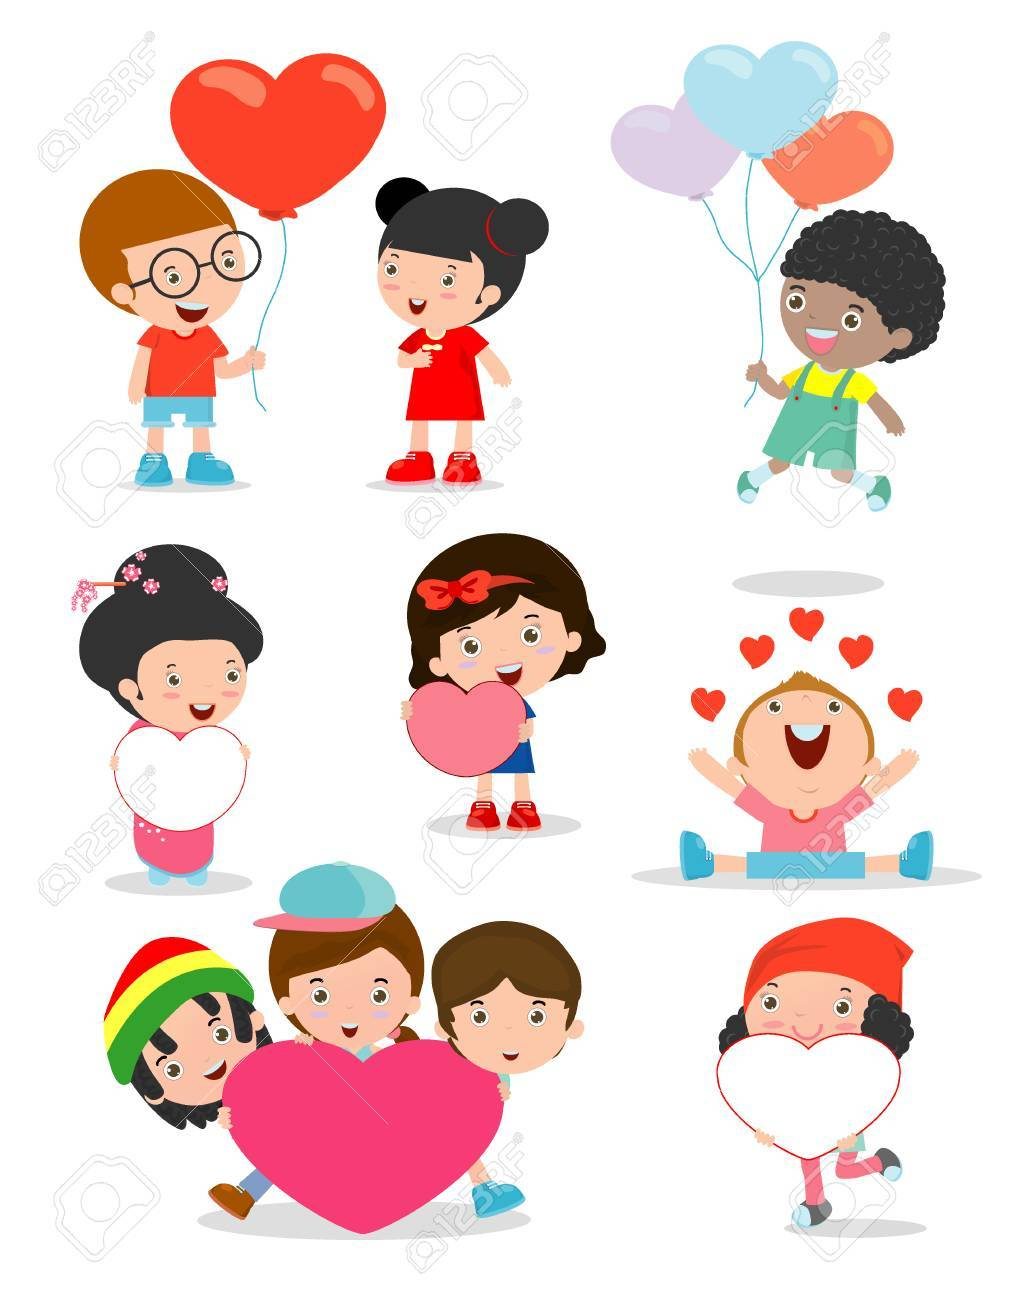 Kids With Heart On White Background Happy Valentine S Day Royalty Free Cliparts Vectors And Stock Illustration Image 50775295